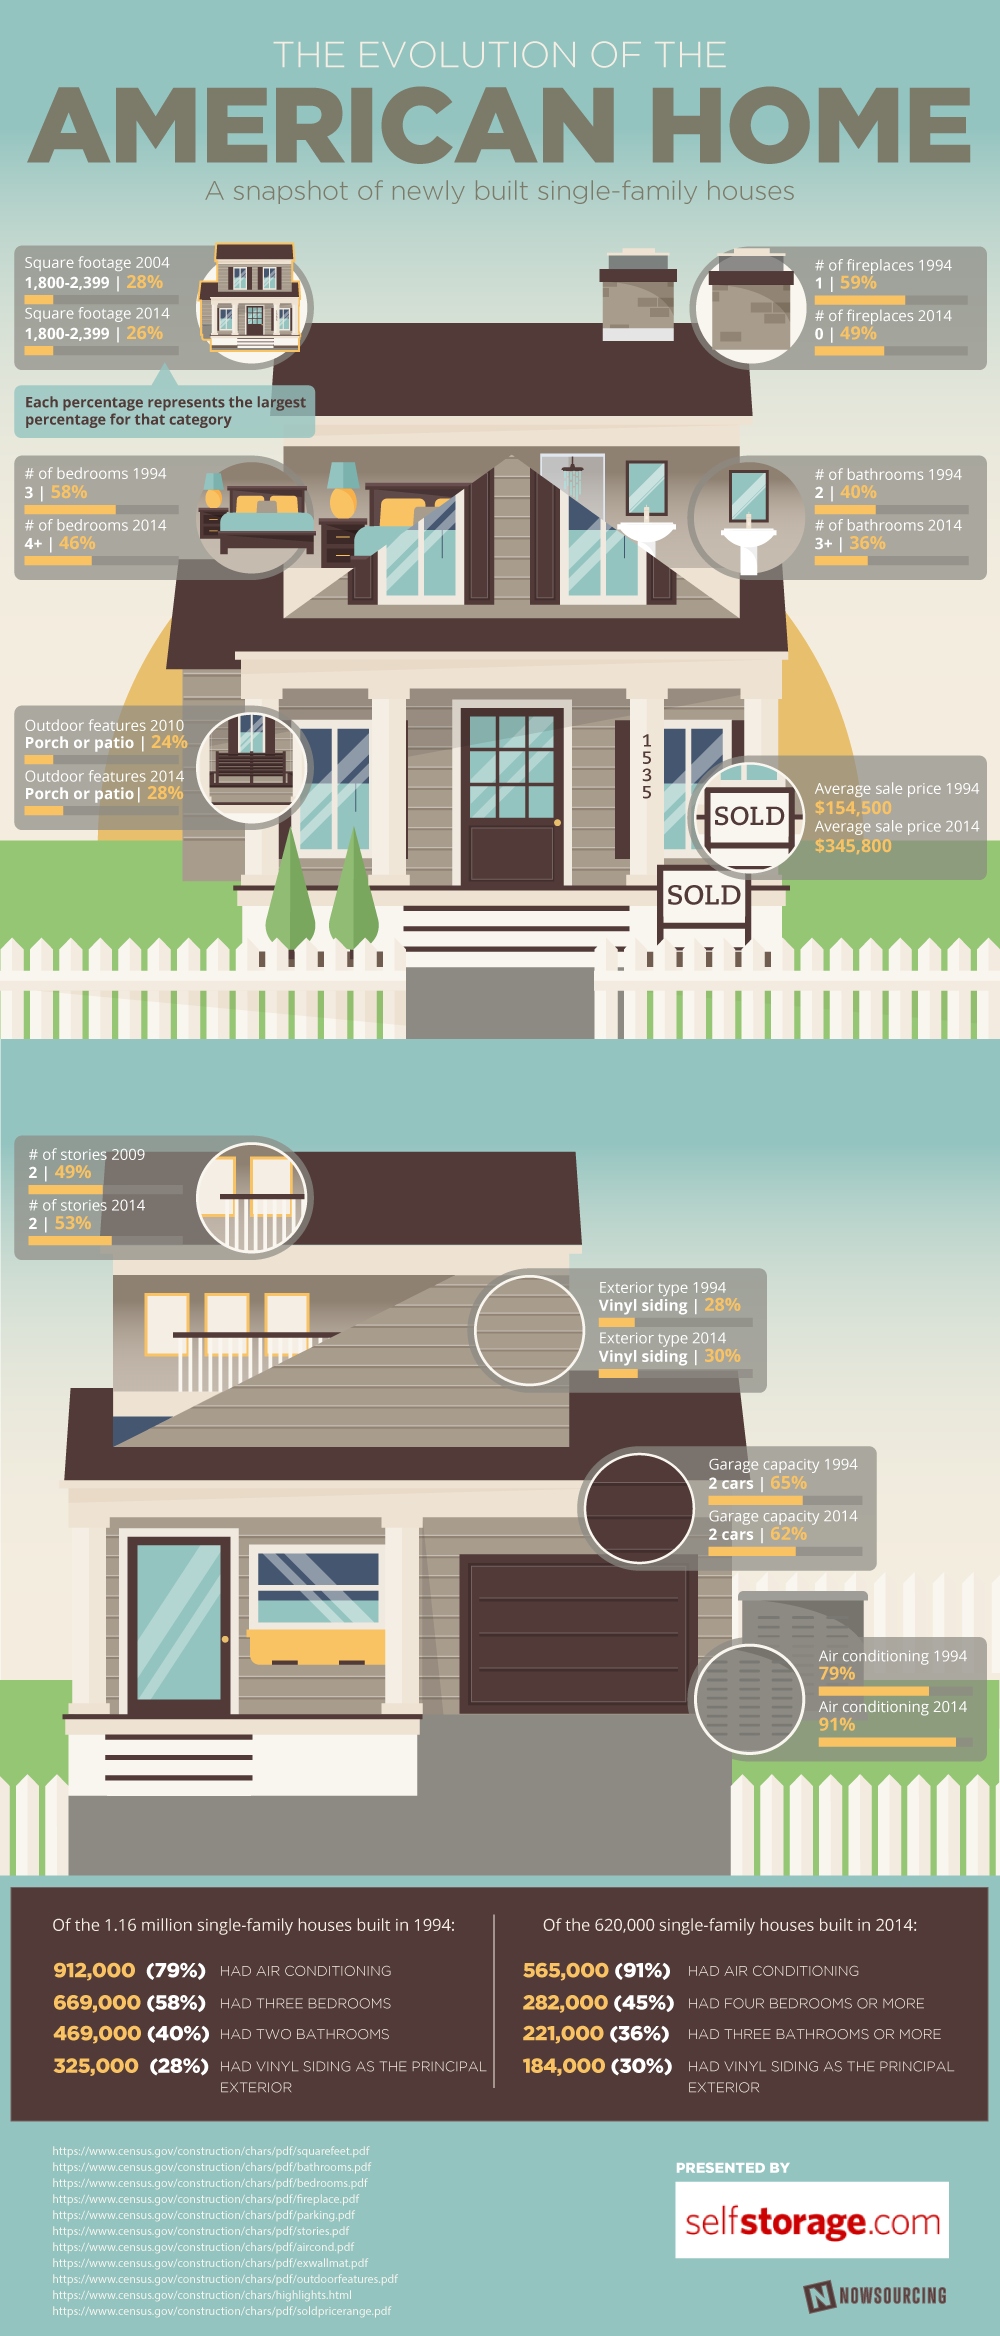 The Evolution of the American Home #infographic